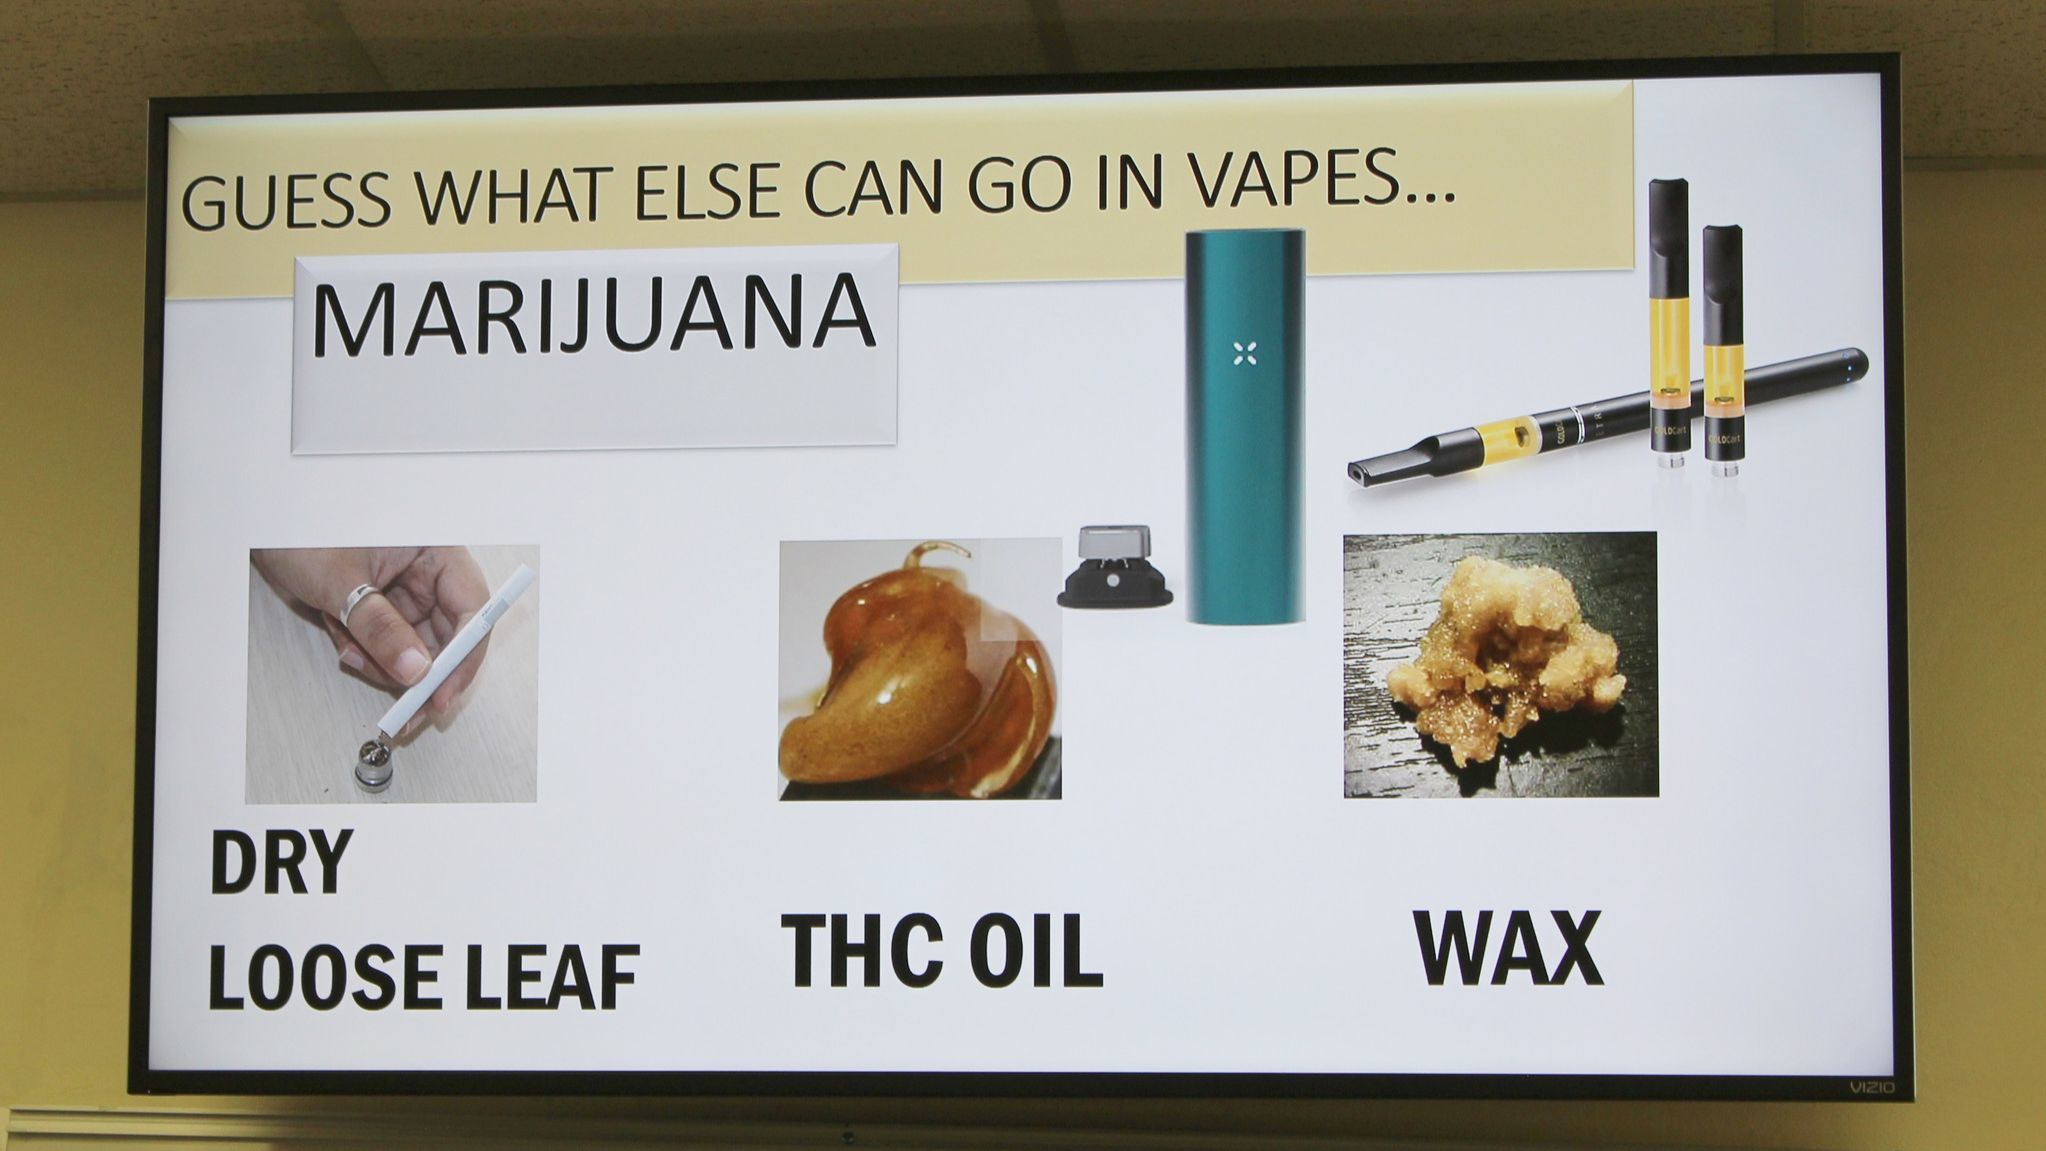 Slide shows what else can go in a vaping device.